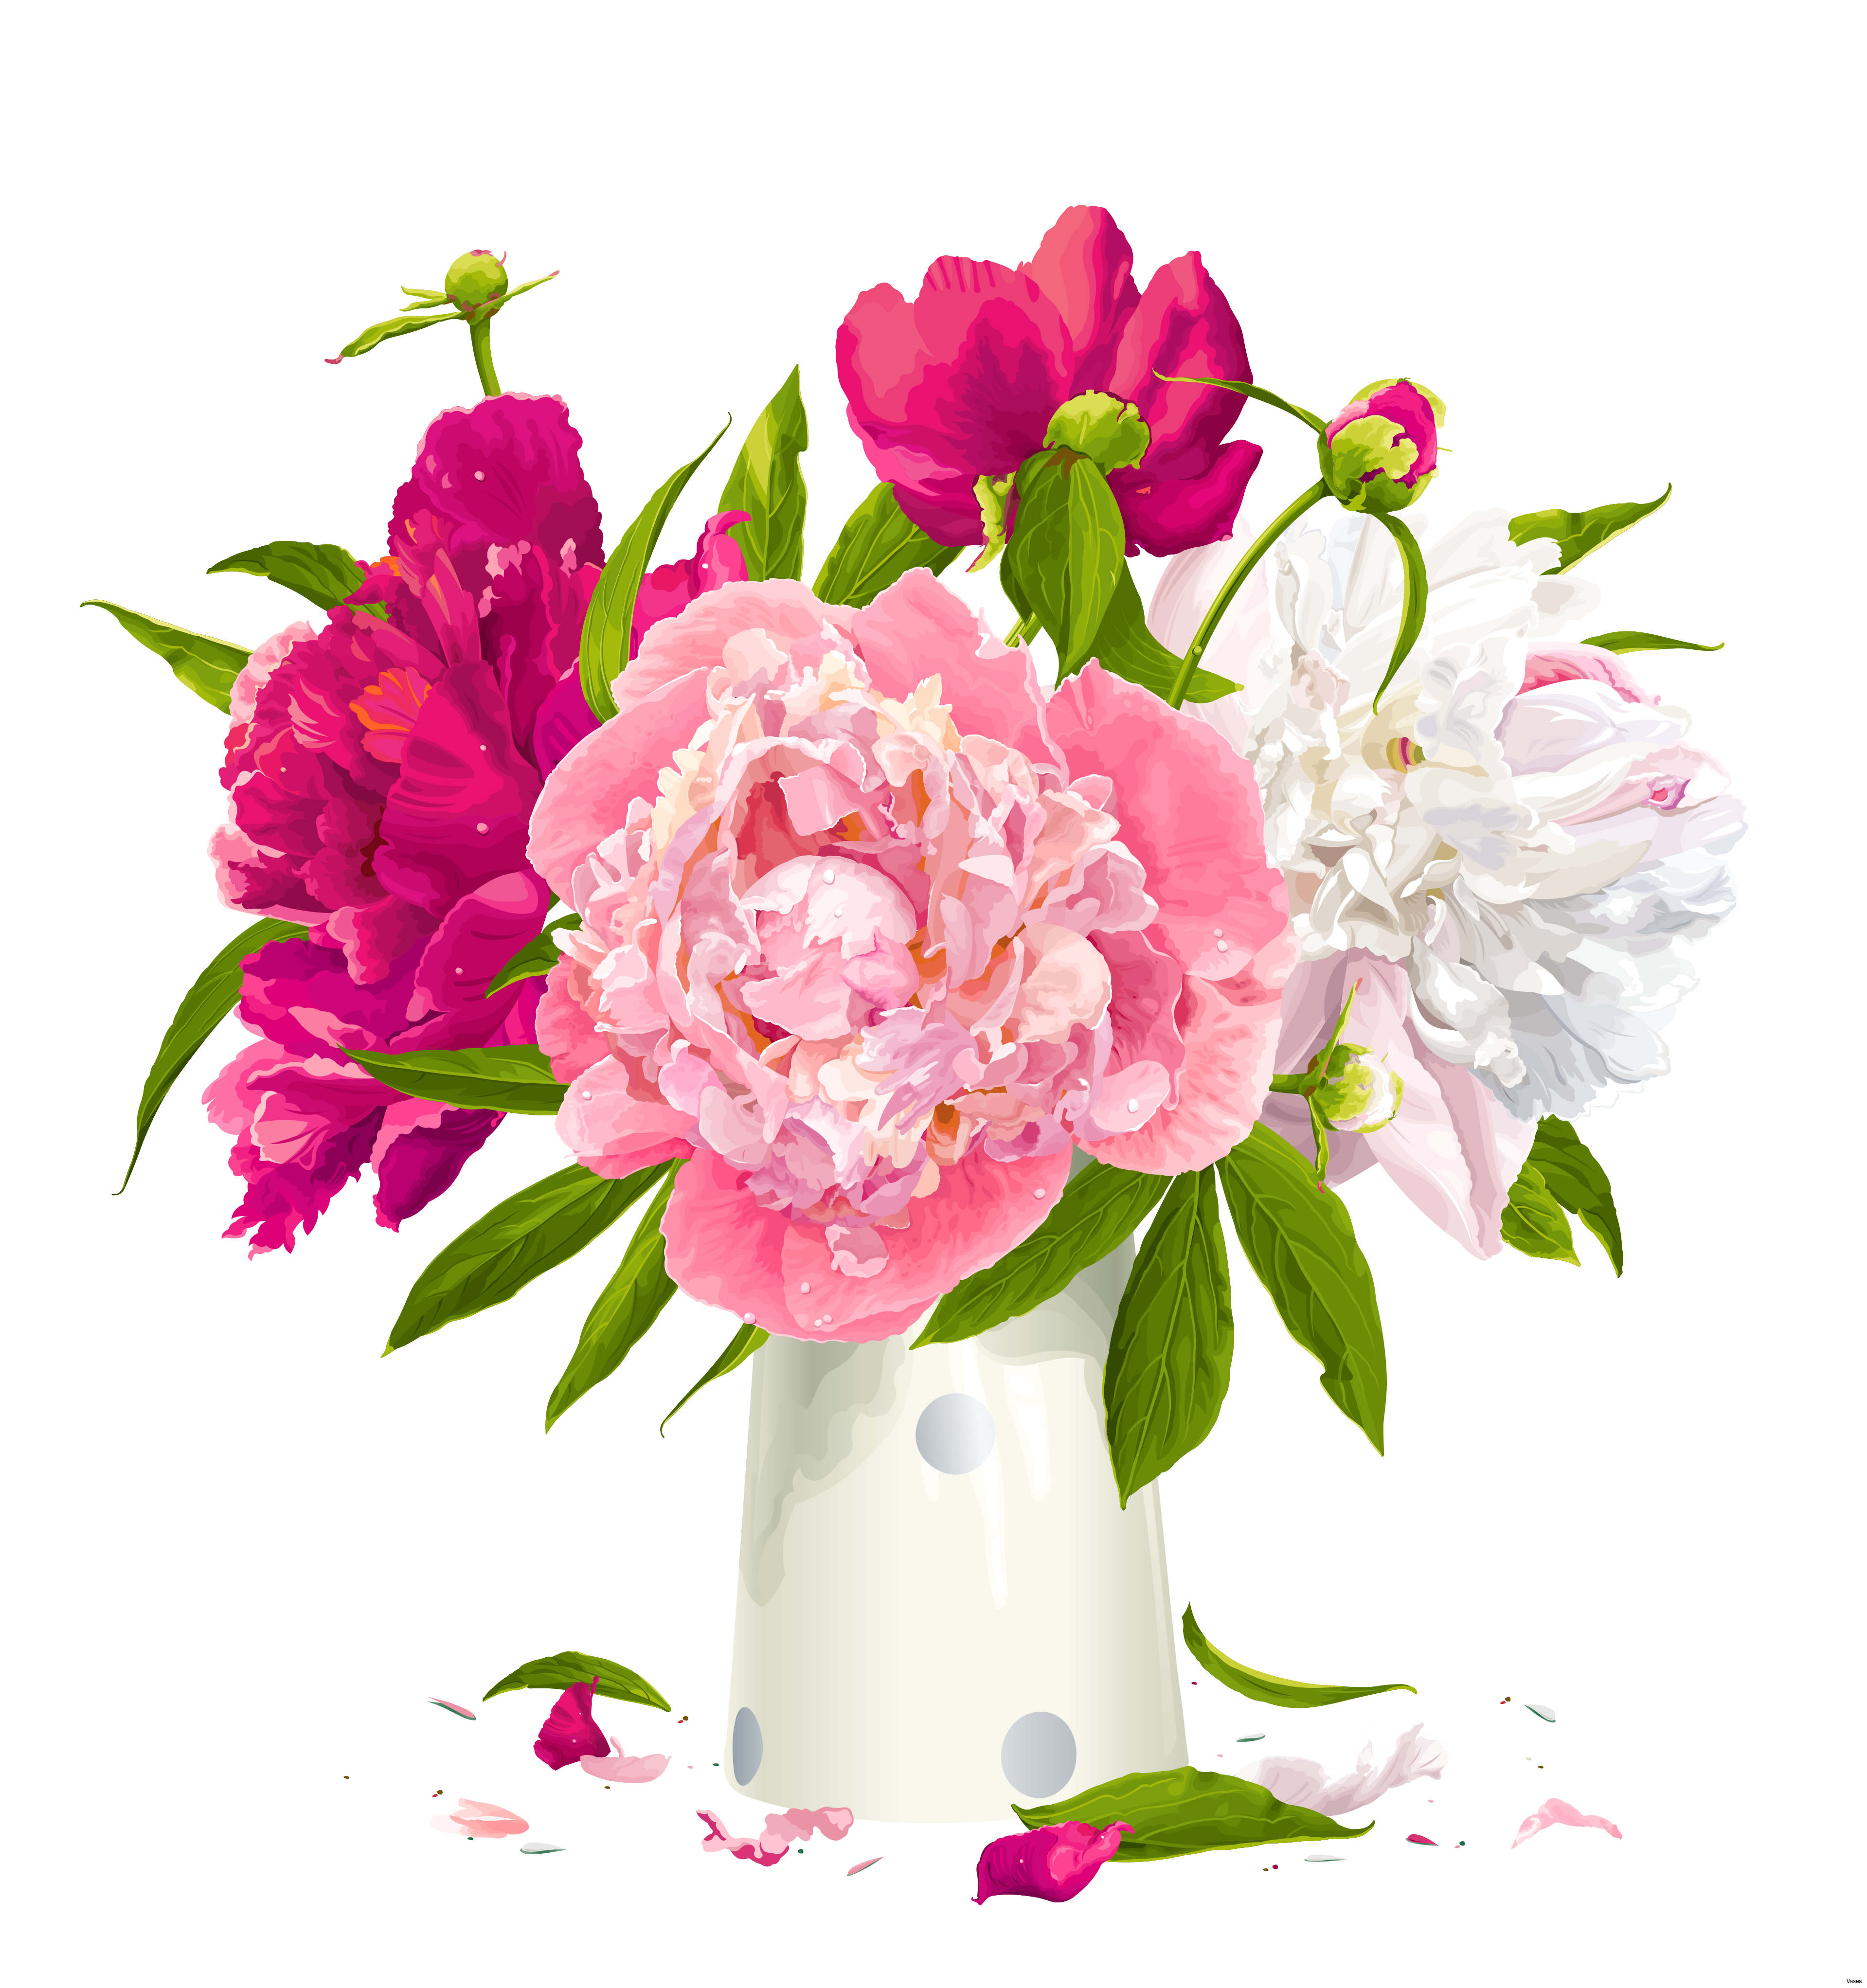 Empty flower vase clipart clip free library Flower Vases With Flowers Clipart Group (58+) clip free library